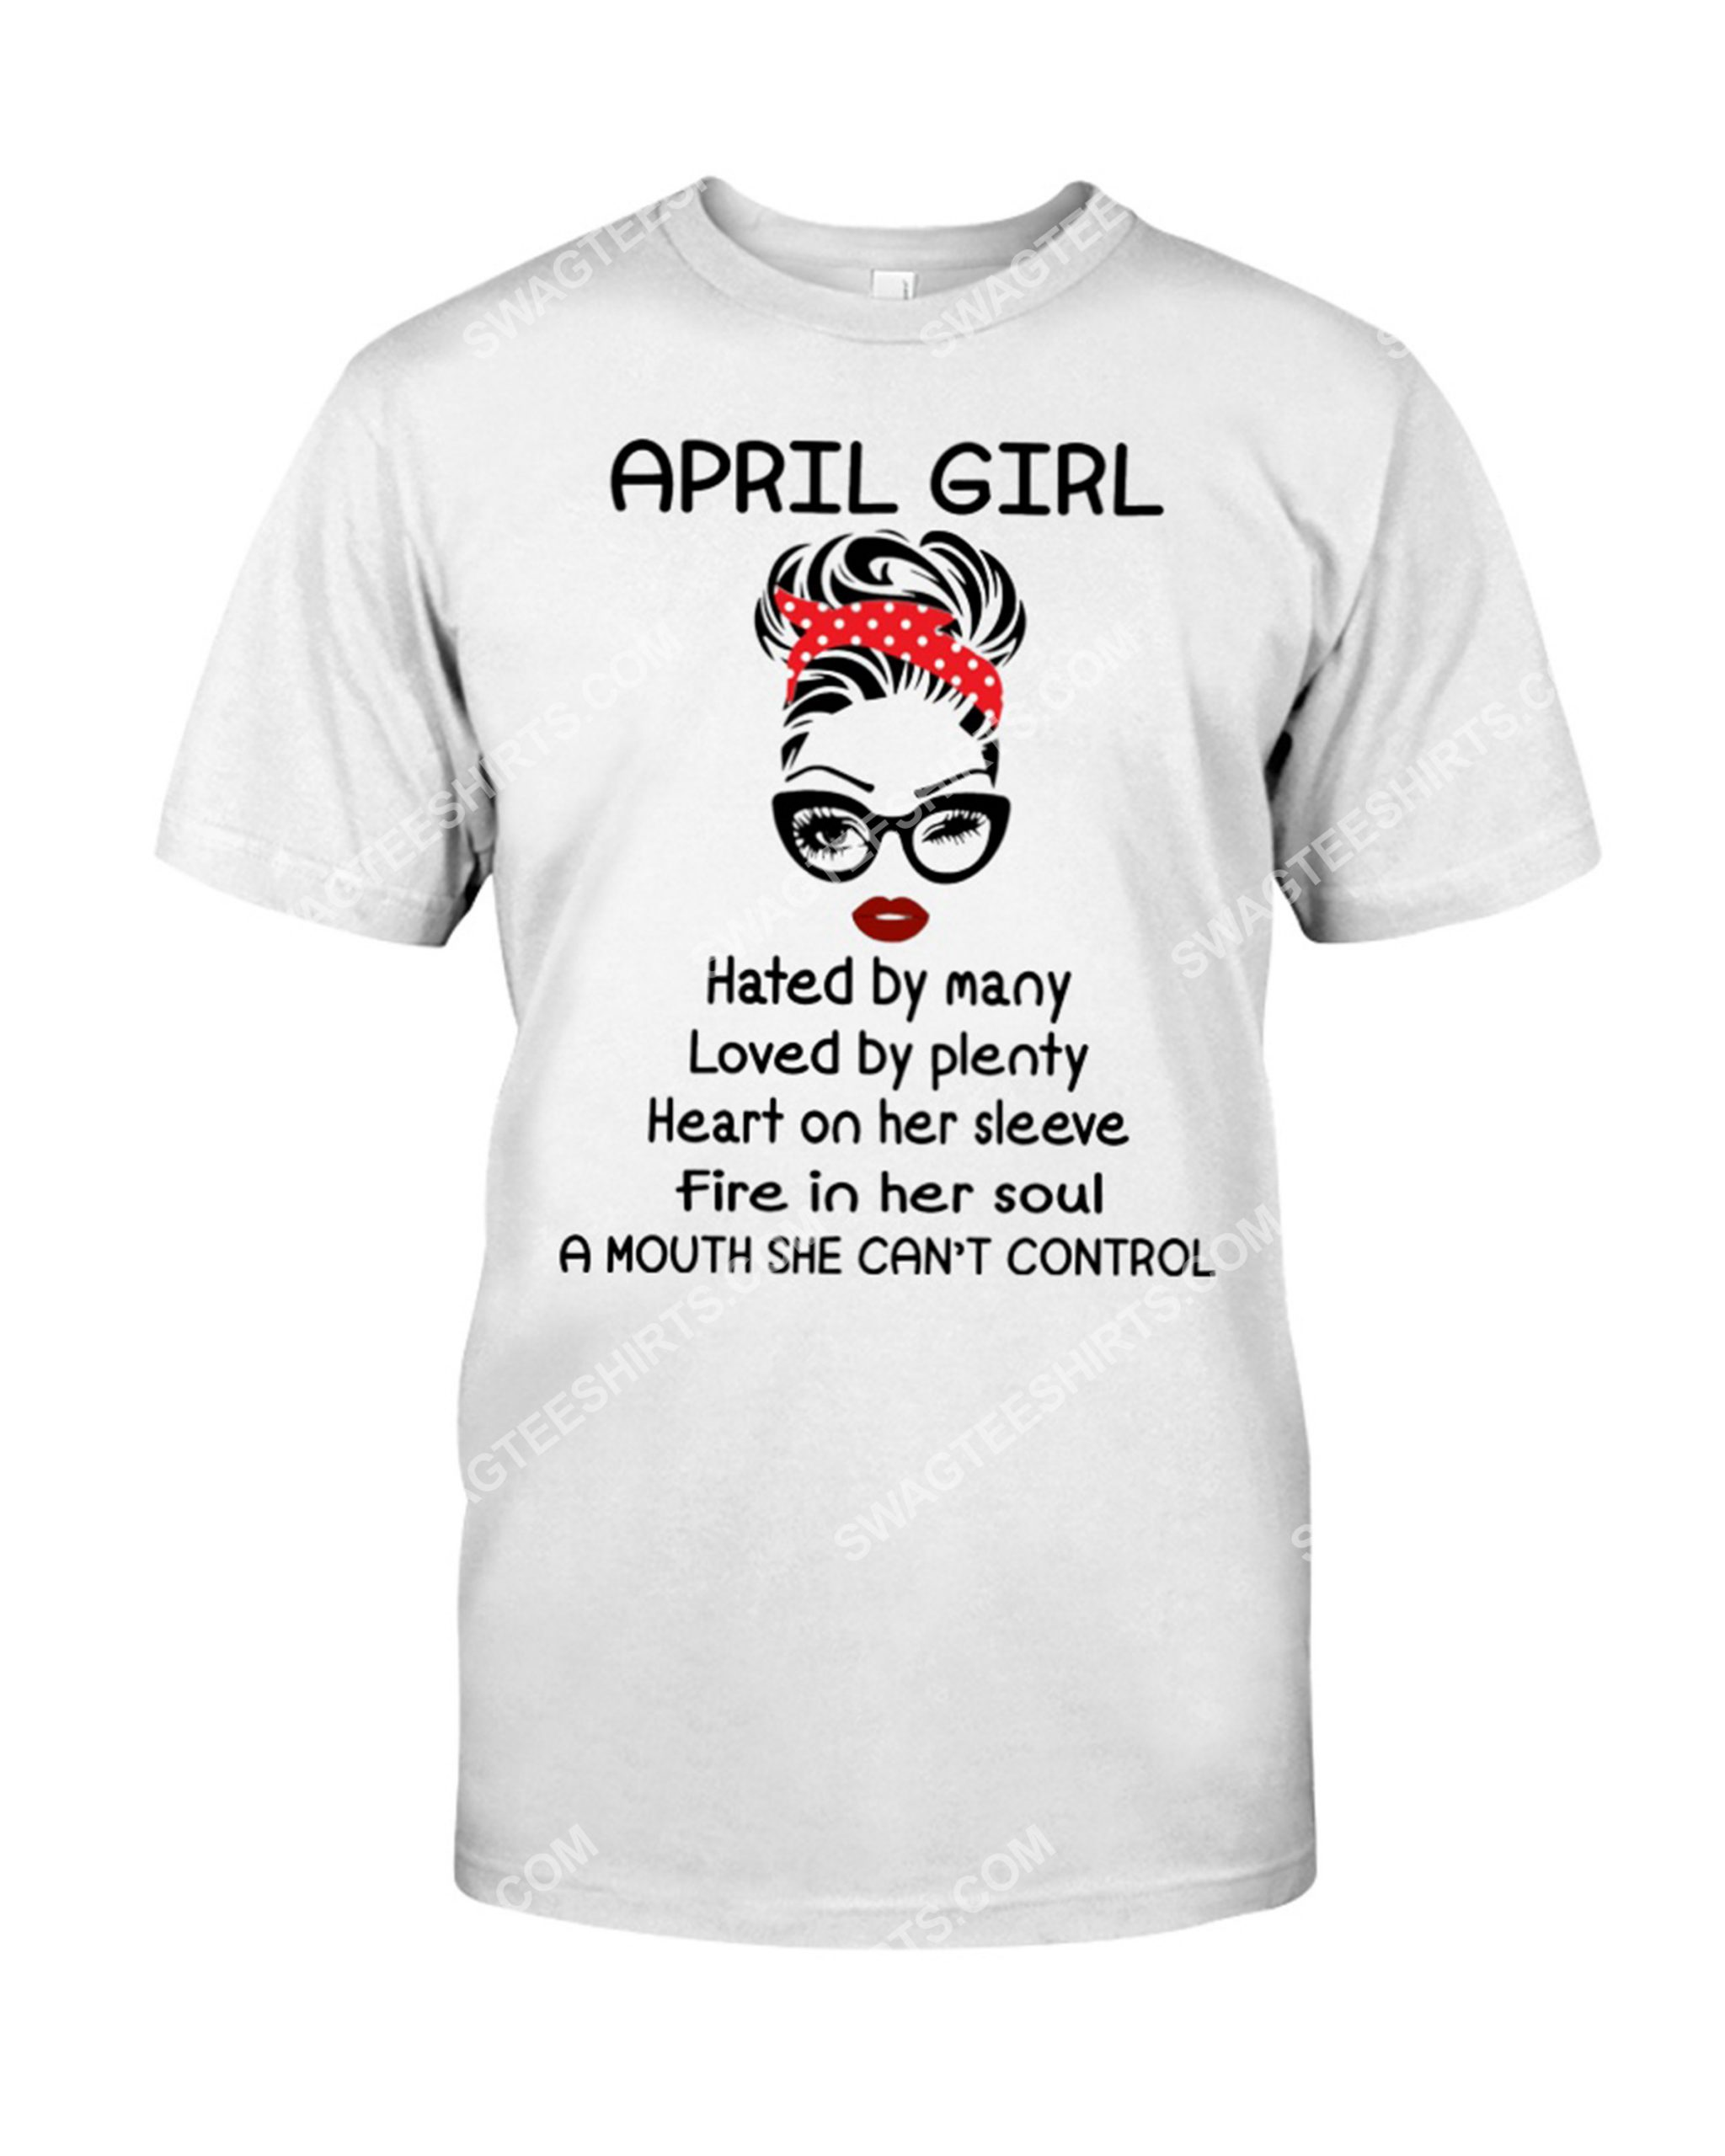 april girl hated by many loved by plenty heart on her sleeve fire in her soul a mouth she can't control shirt 1(1)